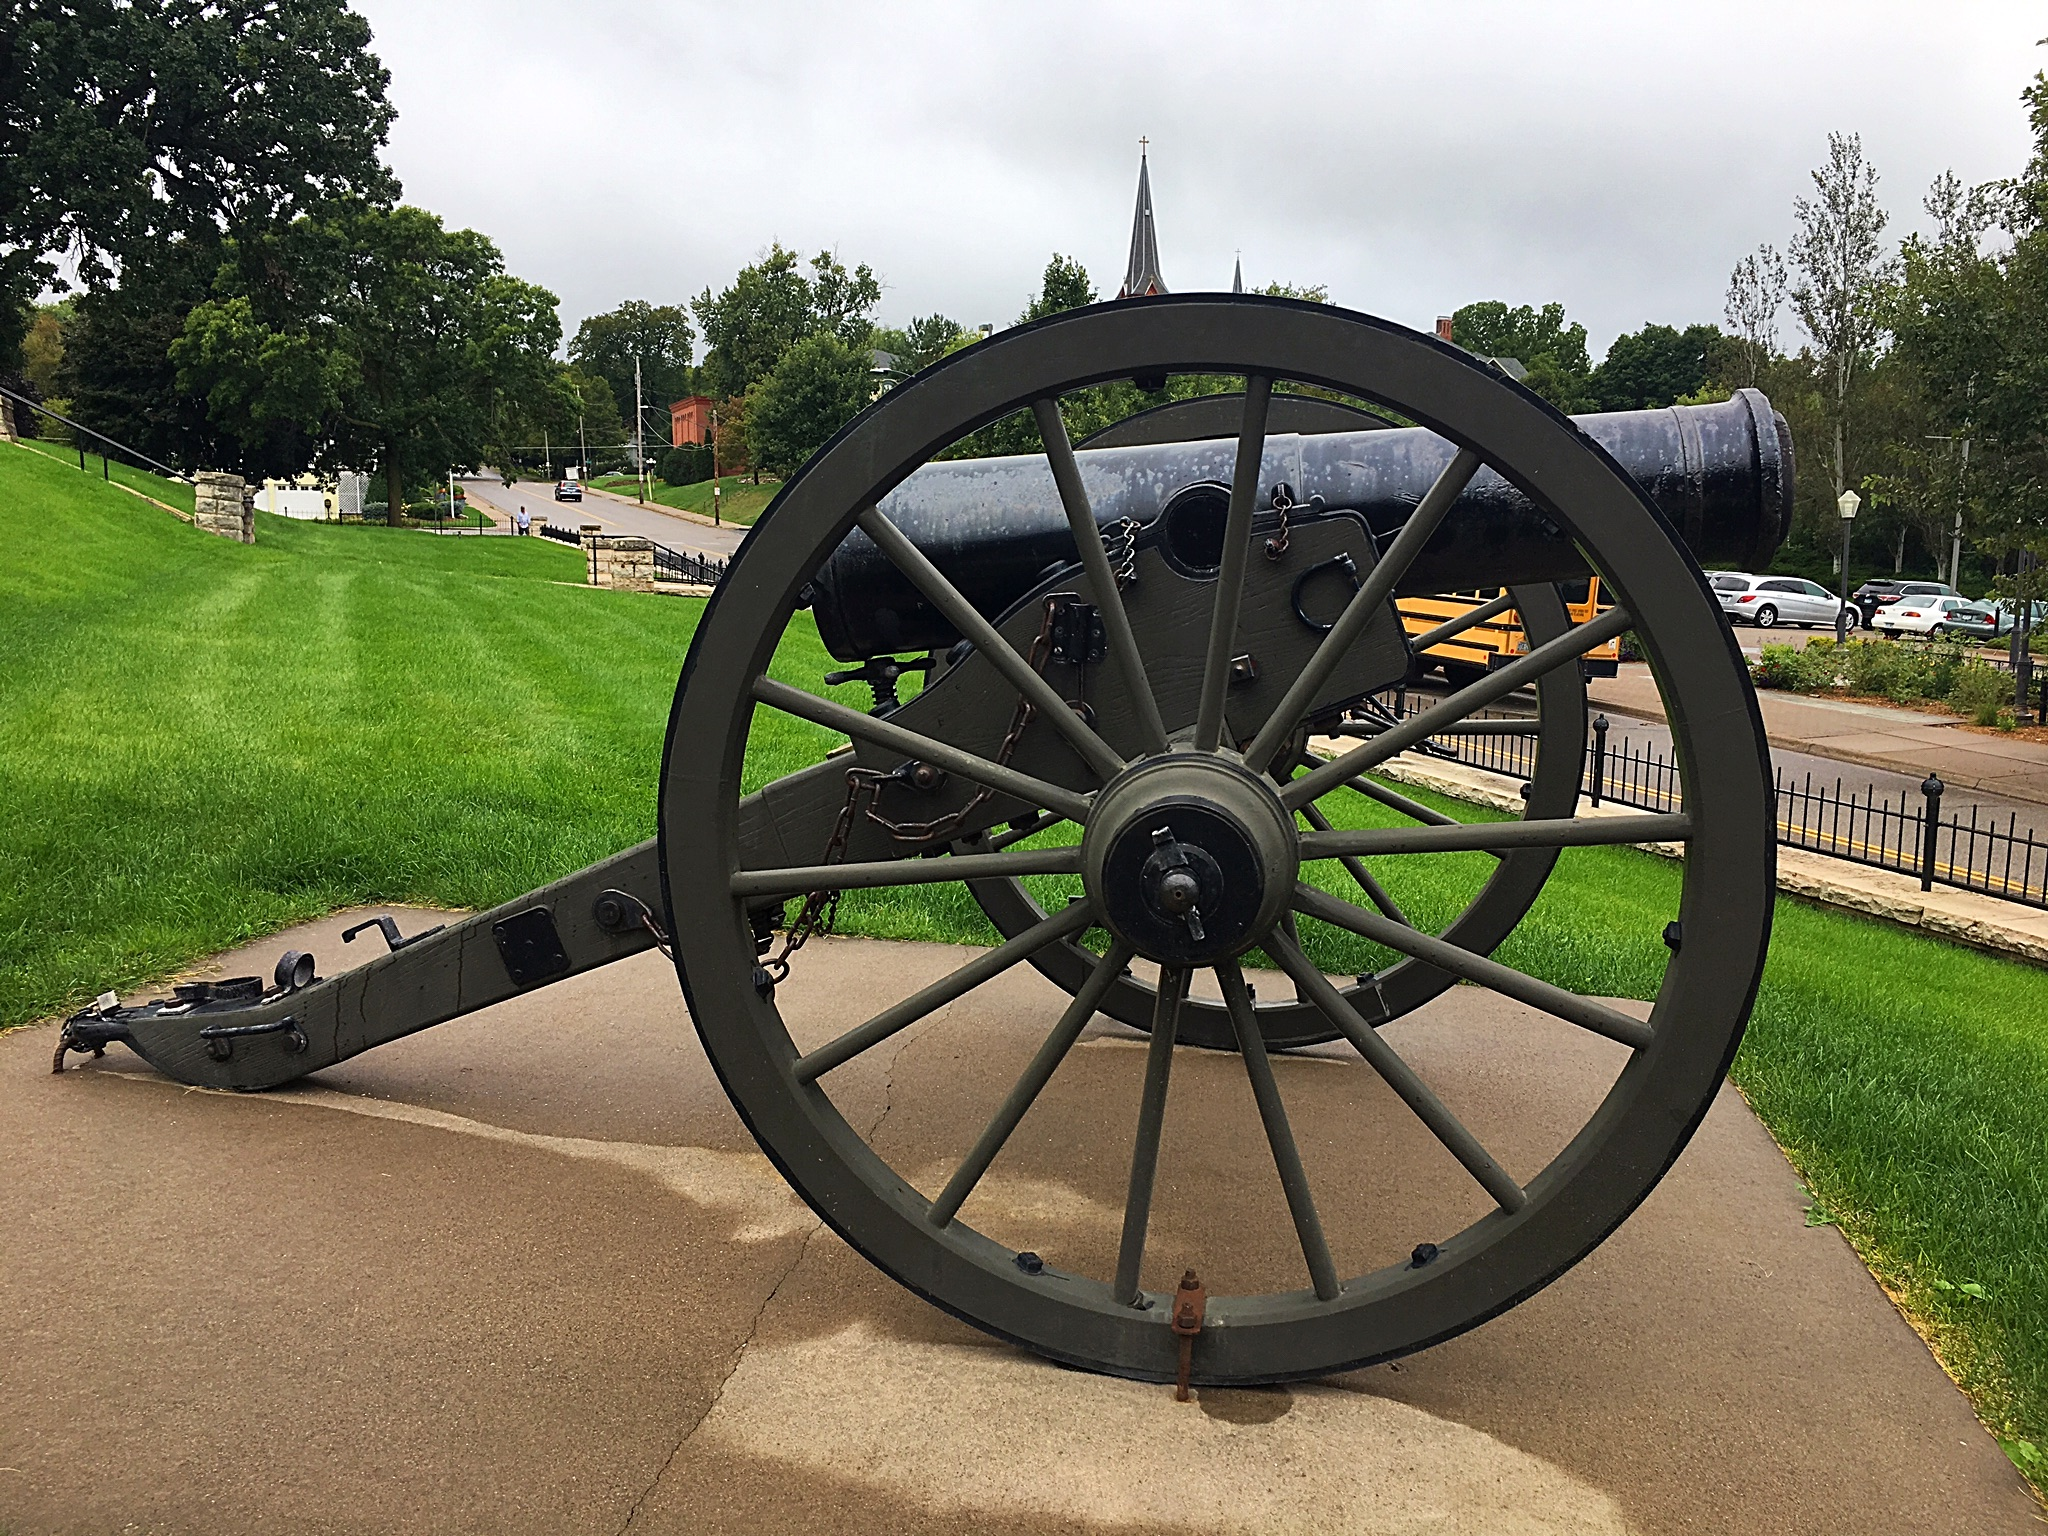 This 24-pounder flank howitzer sits on the grounds of the Washington County Historic Courthouse. The barrel is an authentic Civil War piece, manufactured in 1864. The carriage is a replica. This cannon is the third to sit on the courthouse grounds, with the first two removed from the site to support the World War I and World War II efforts in 1916 and 1932, respectively.